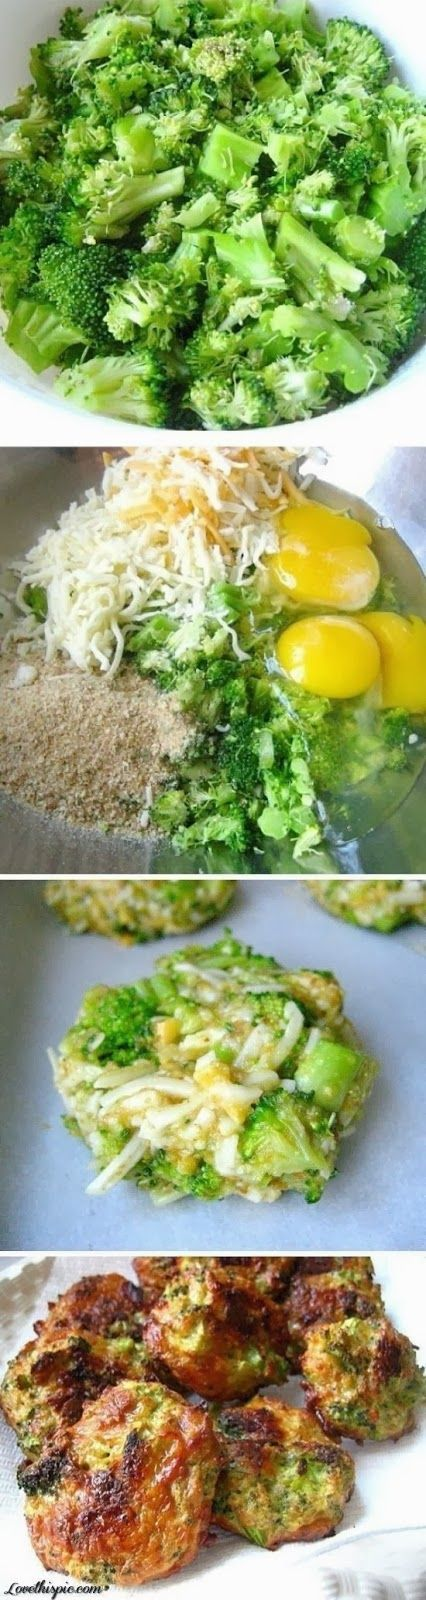 Healthy Eating Broccoli Cheese Bites